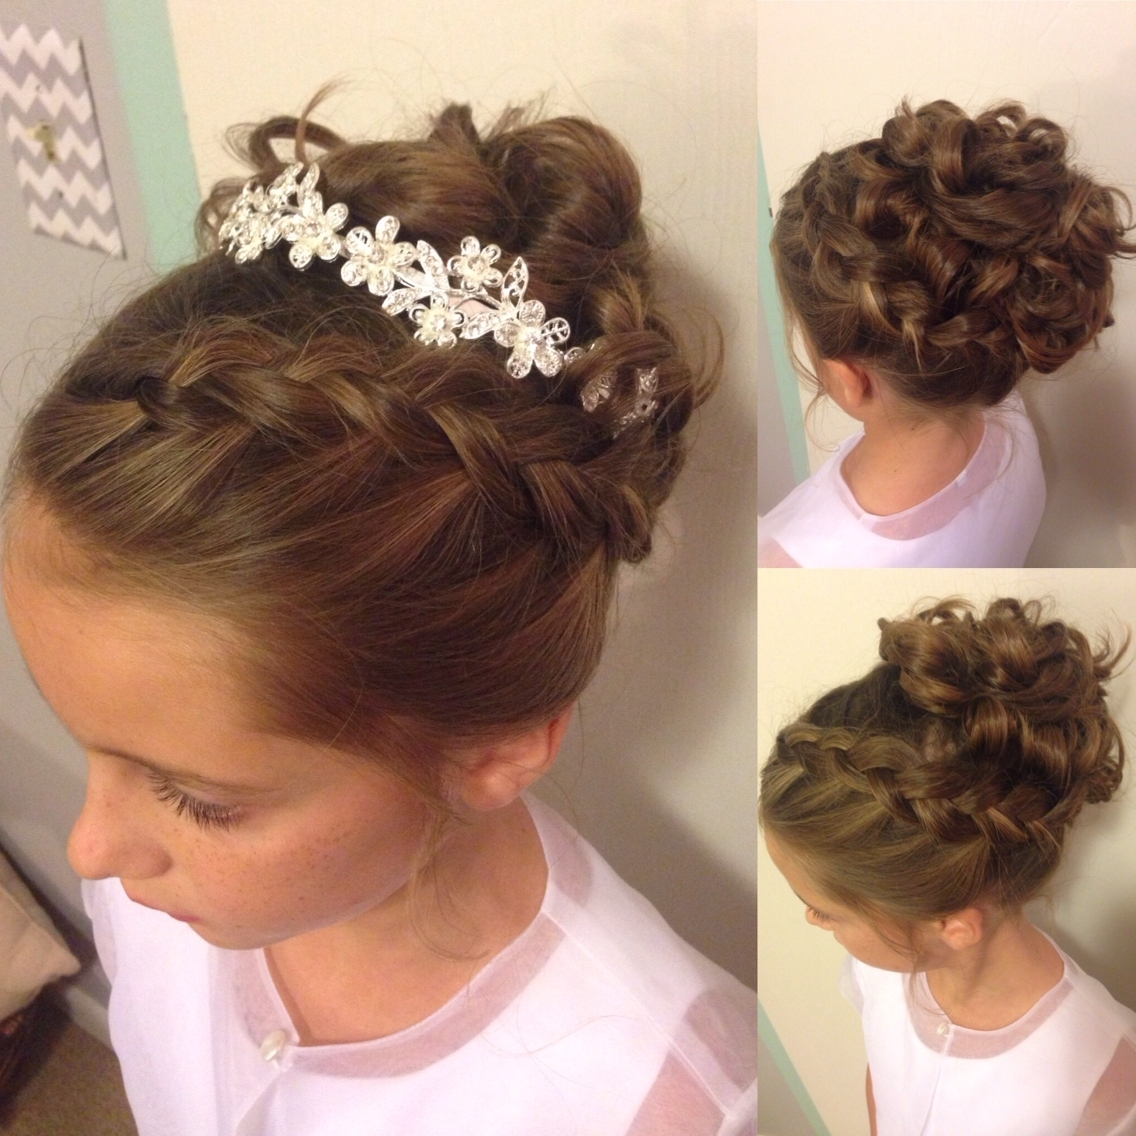 Little Girl Updo (View 5 of 15)